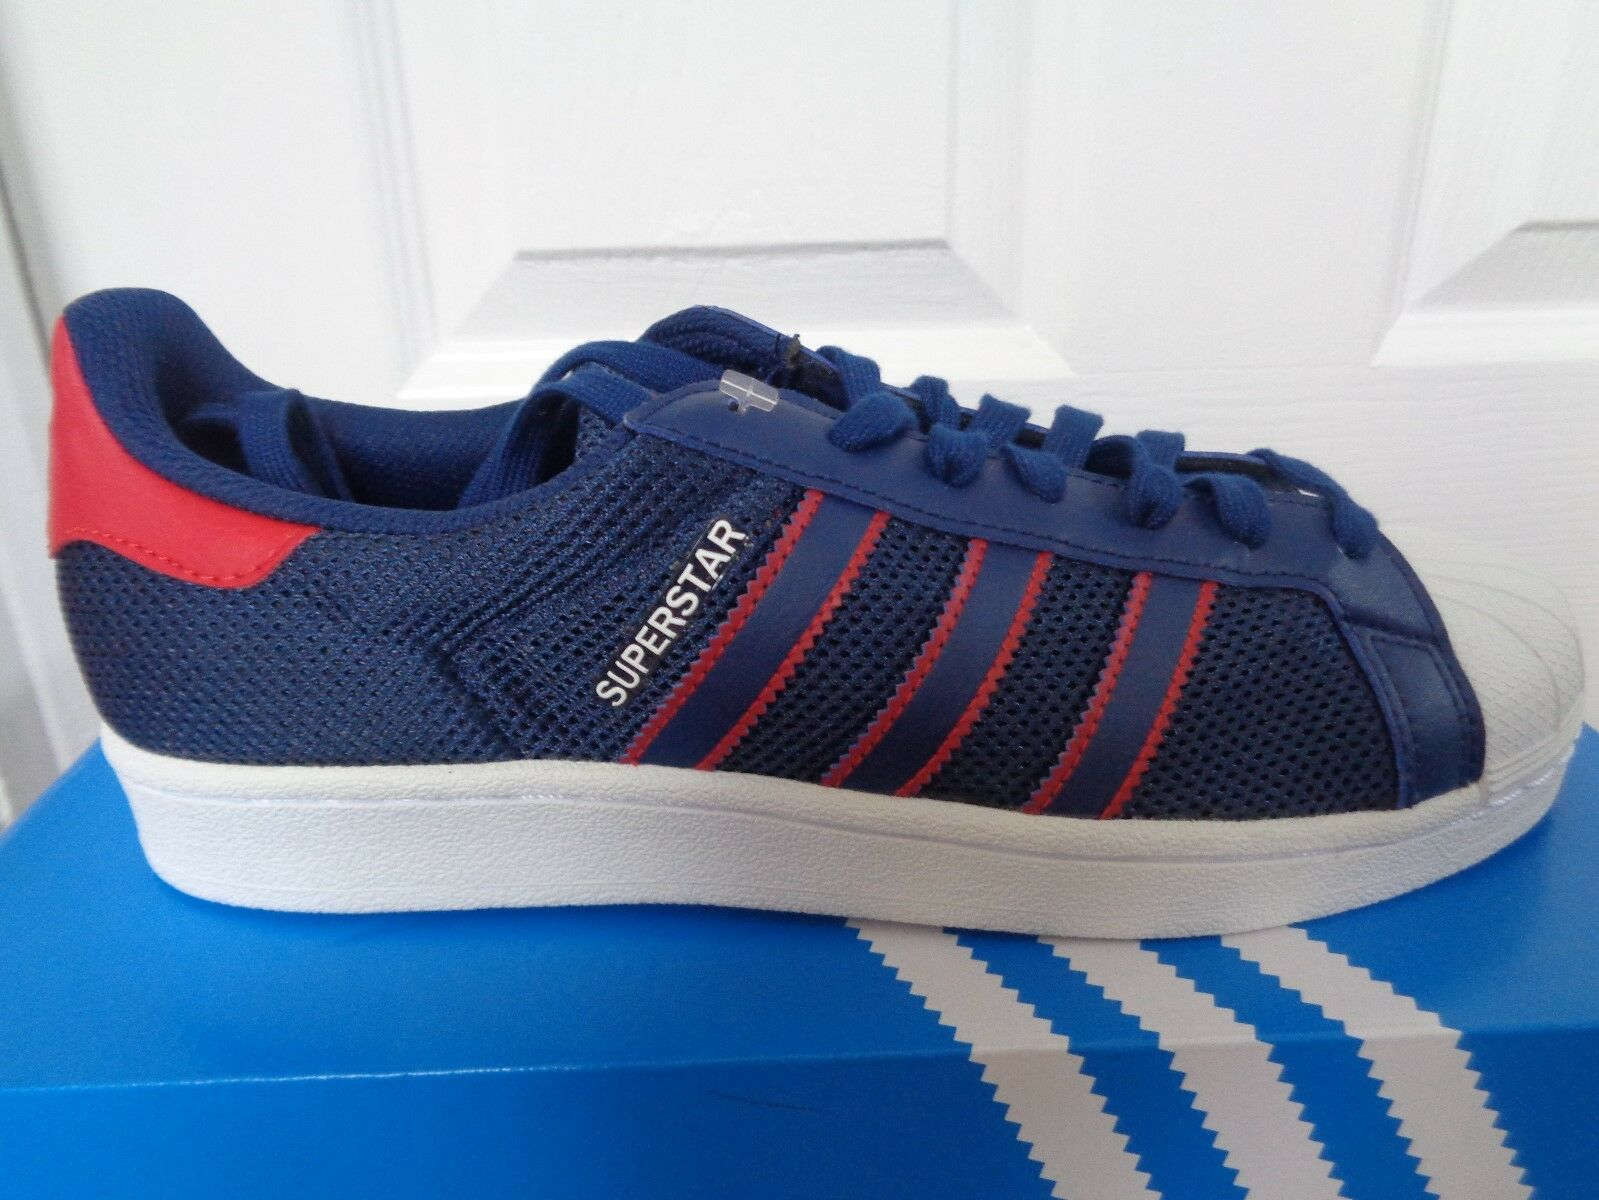 Adidas Superstar mens trainers Turnschuhe BB5395 uk 7.5 eu 41 1 3 us 8 NEW+BOX